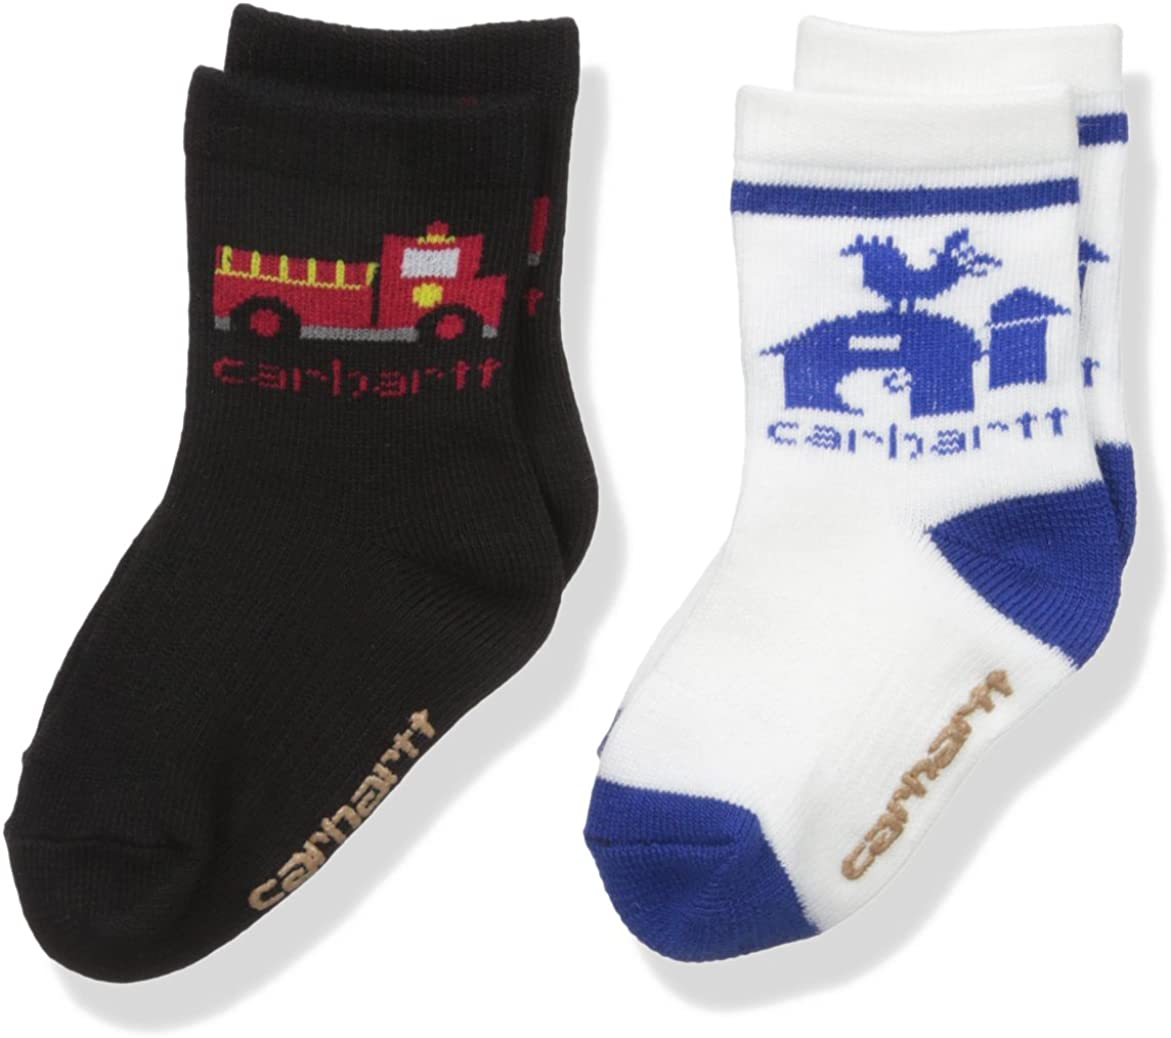 Carhartt Toddler Boys 2 Pack Infant-Toddler Crew Socks with Grippers